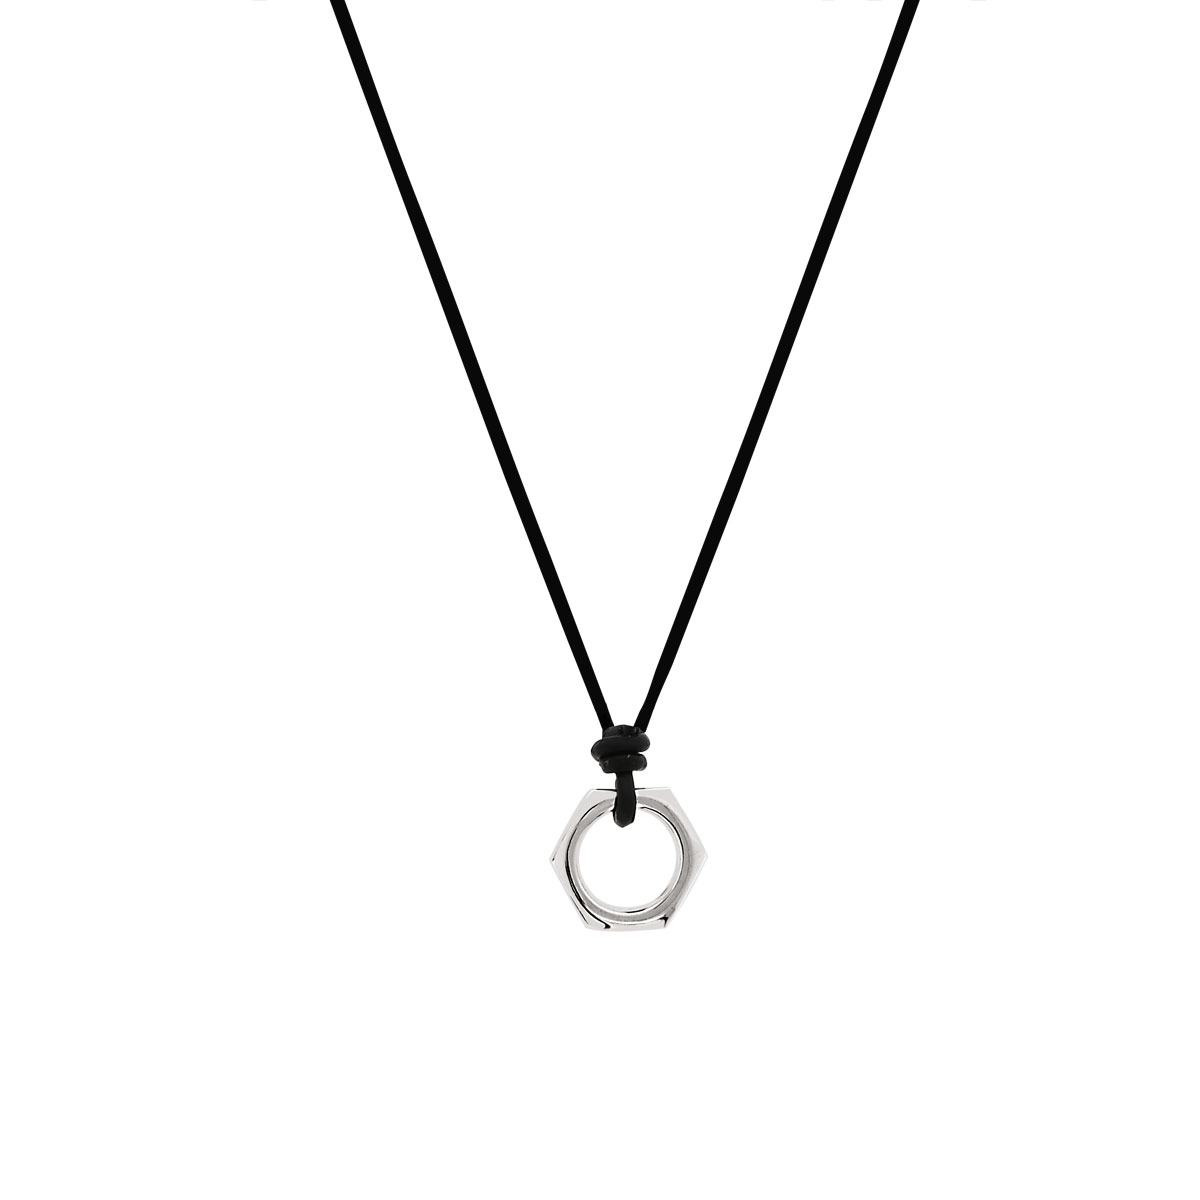 Collier cordon argent diamant 50 cm